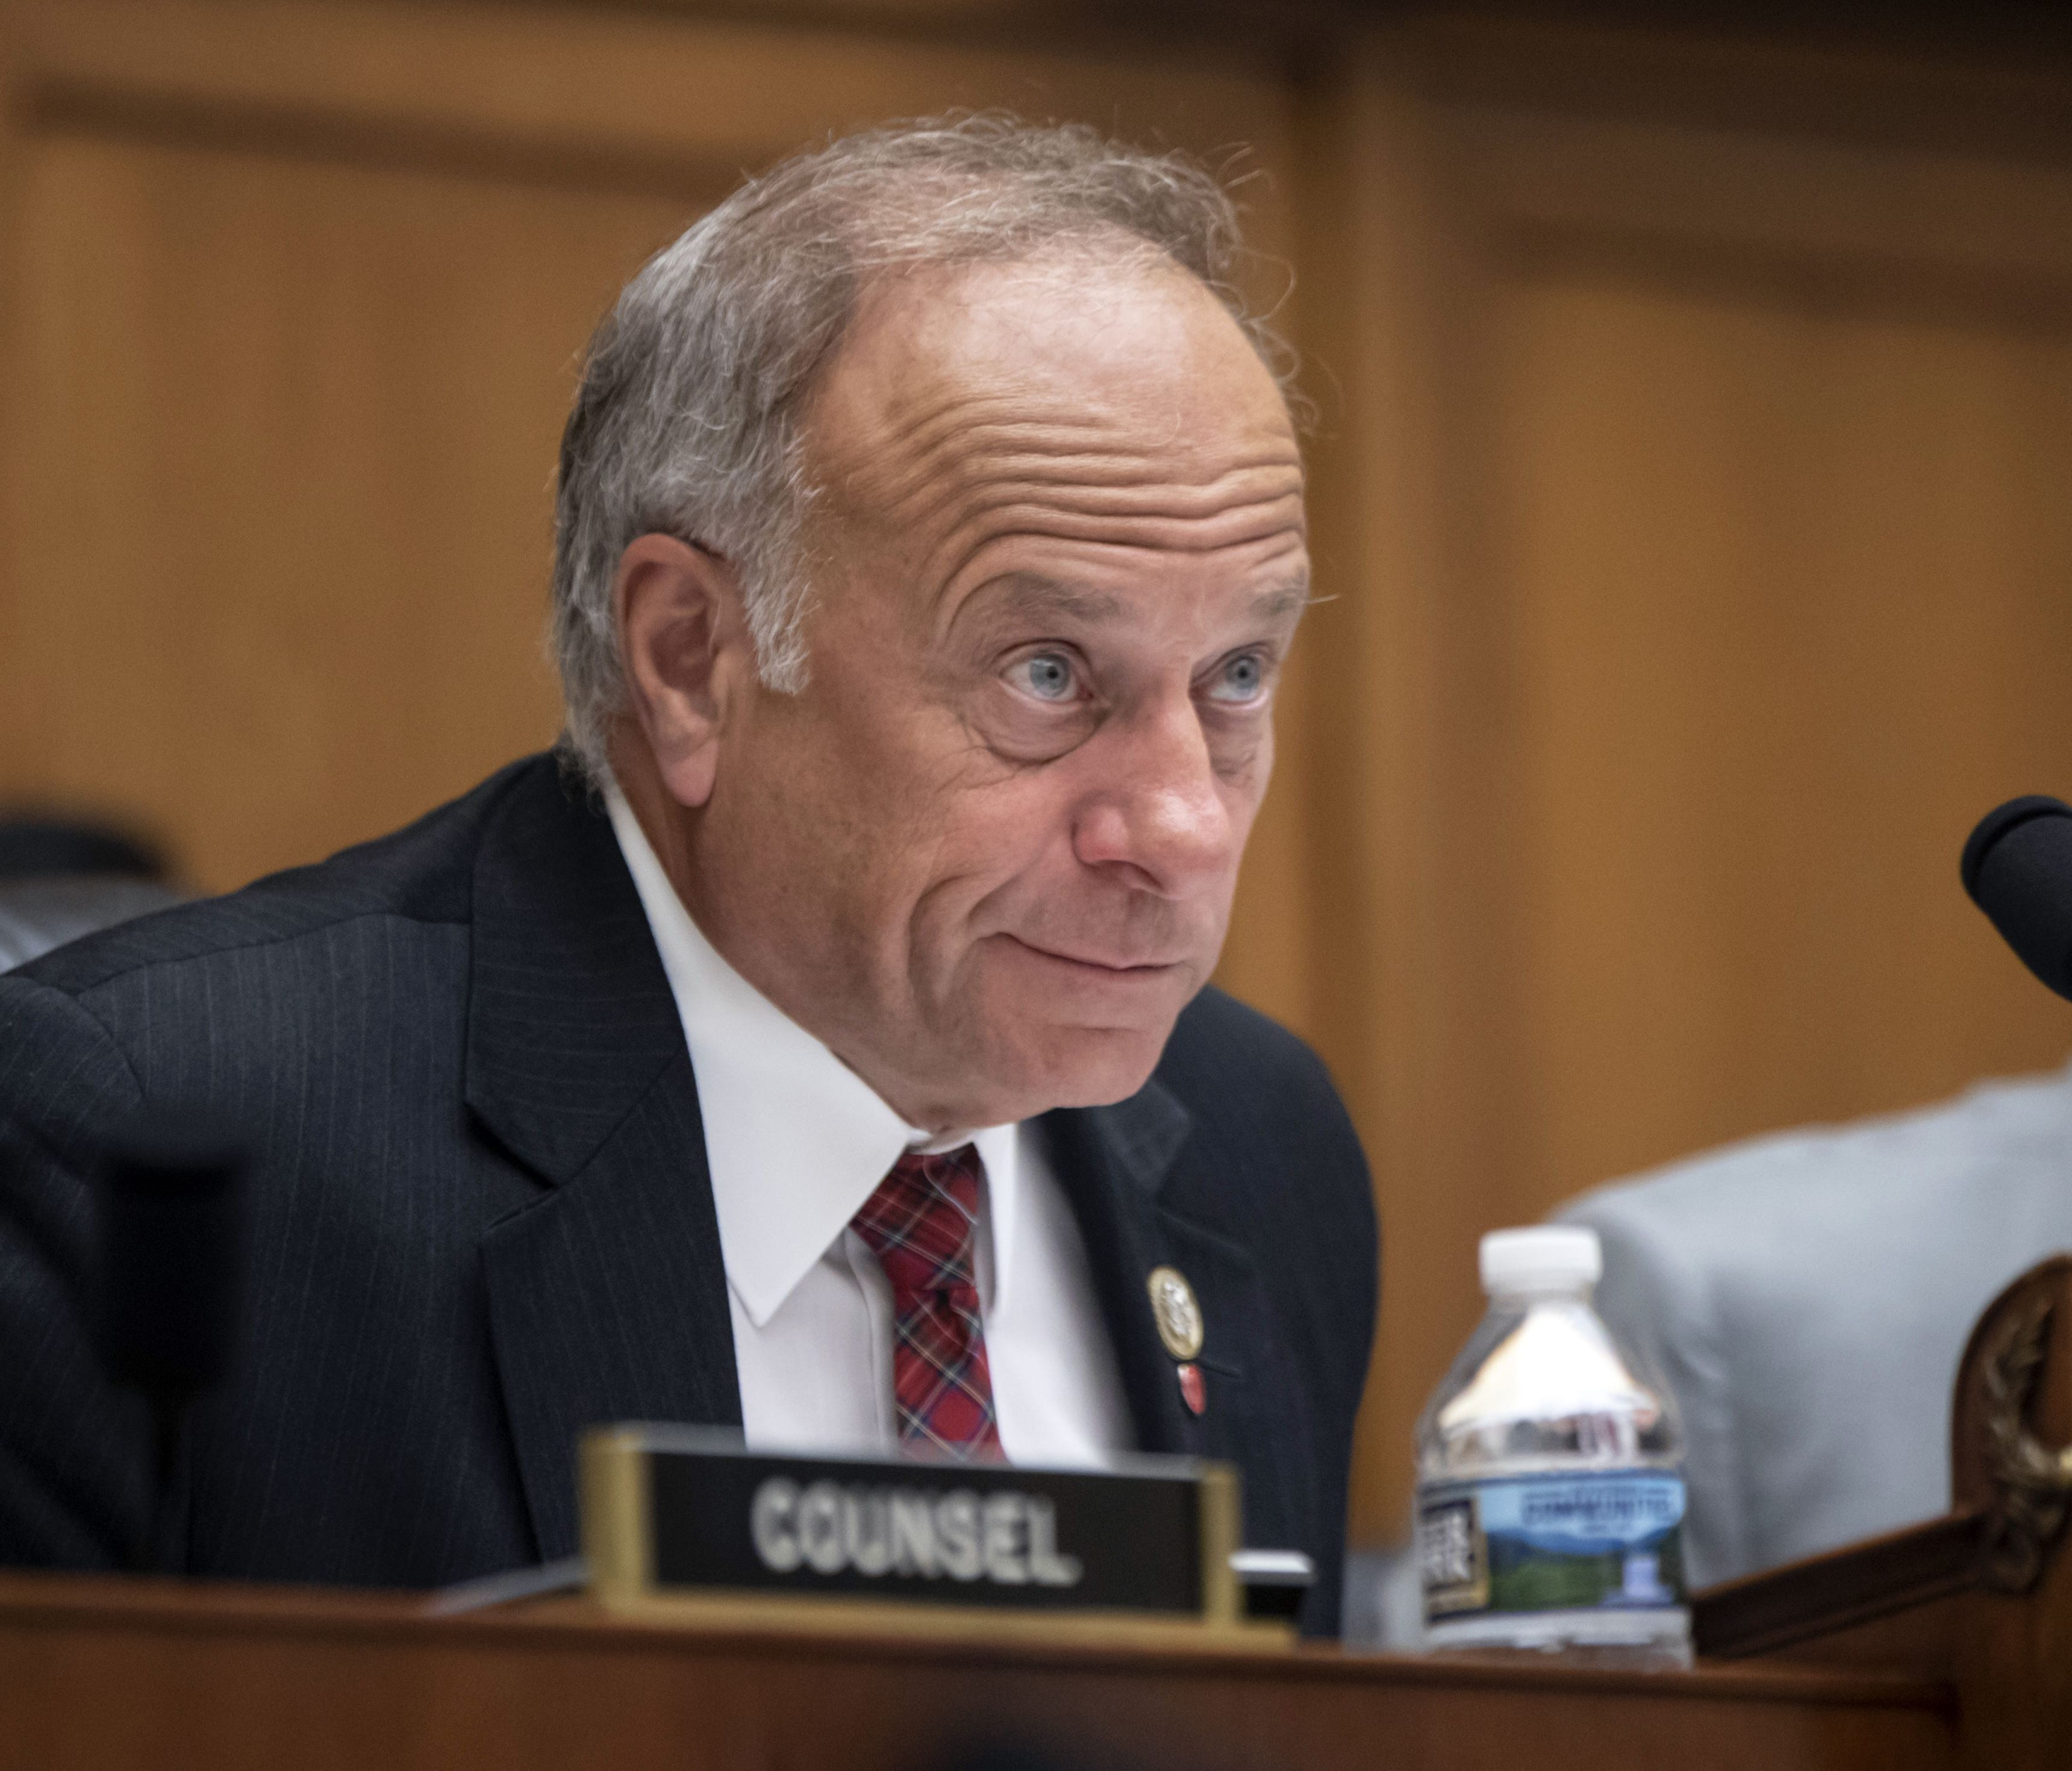 Rep. Steve King, R-Iowa, an outspoken conservative on immigration, chairs a House Judiciary Subcommittee on the Constitution and Civil Justice hearing on the Trump Administration's plan to add citizenship questions to the 2020 census, on Capitol Hill